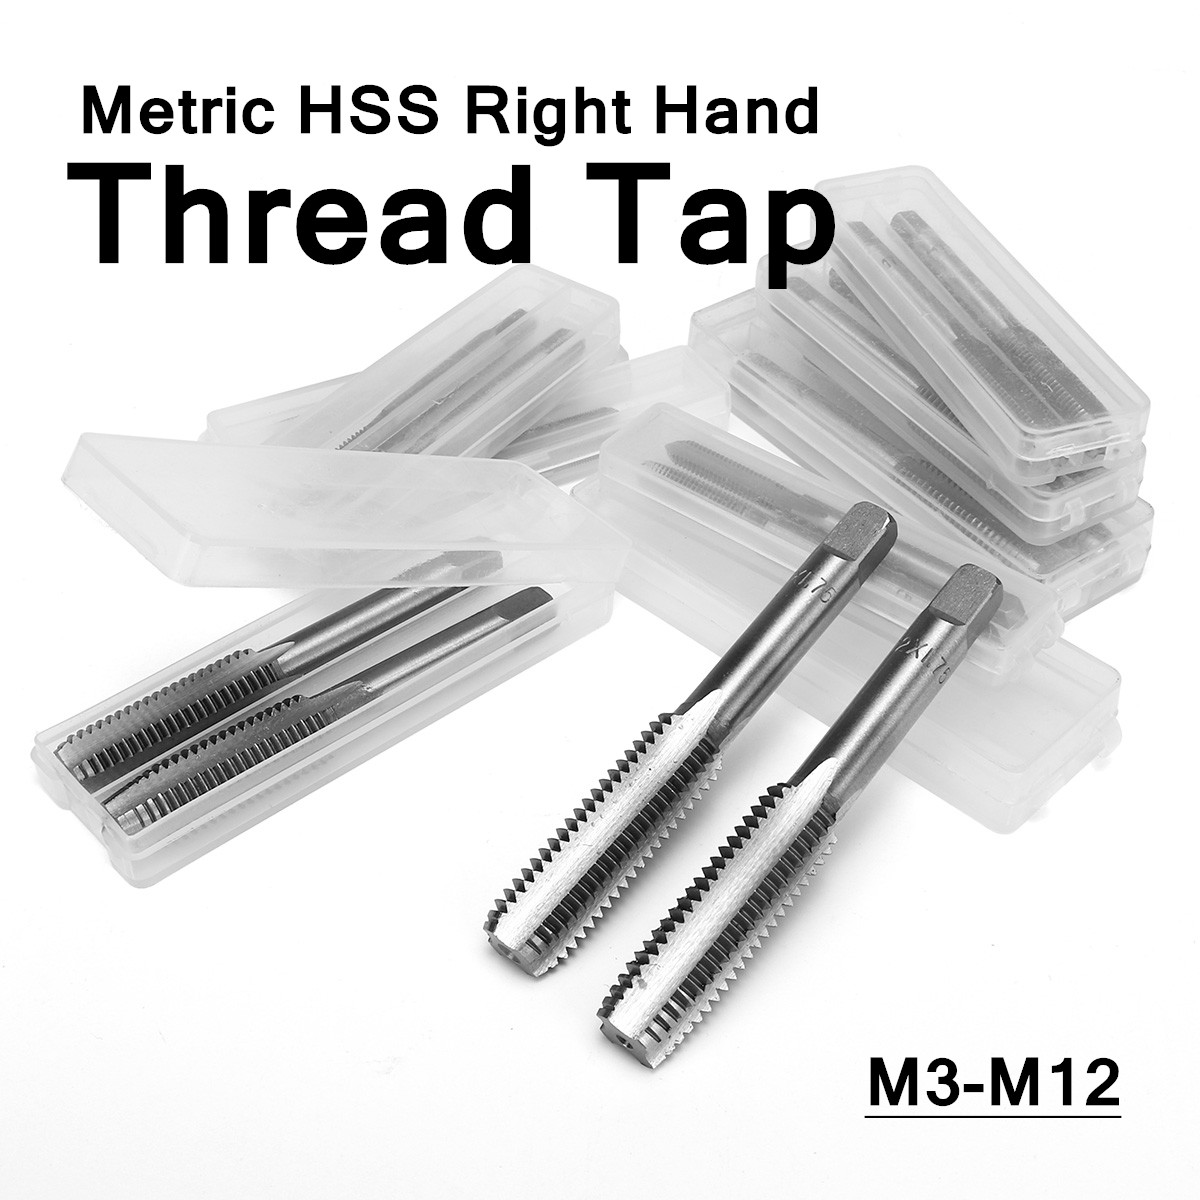 DORESUPP 2Pcs Thread Taps Set Spiral Inch M3 M4 M5 M6 M7 M8 M9 M10 M12 Industrial Metric HSS Right Hand Drill Bits Plug Taps on AliExpress